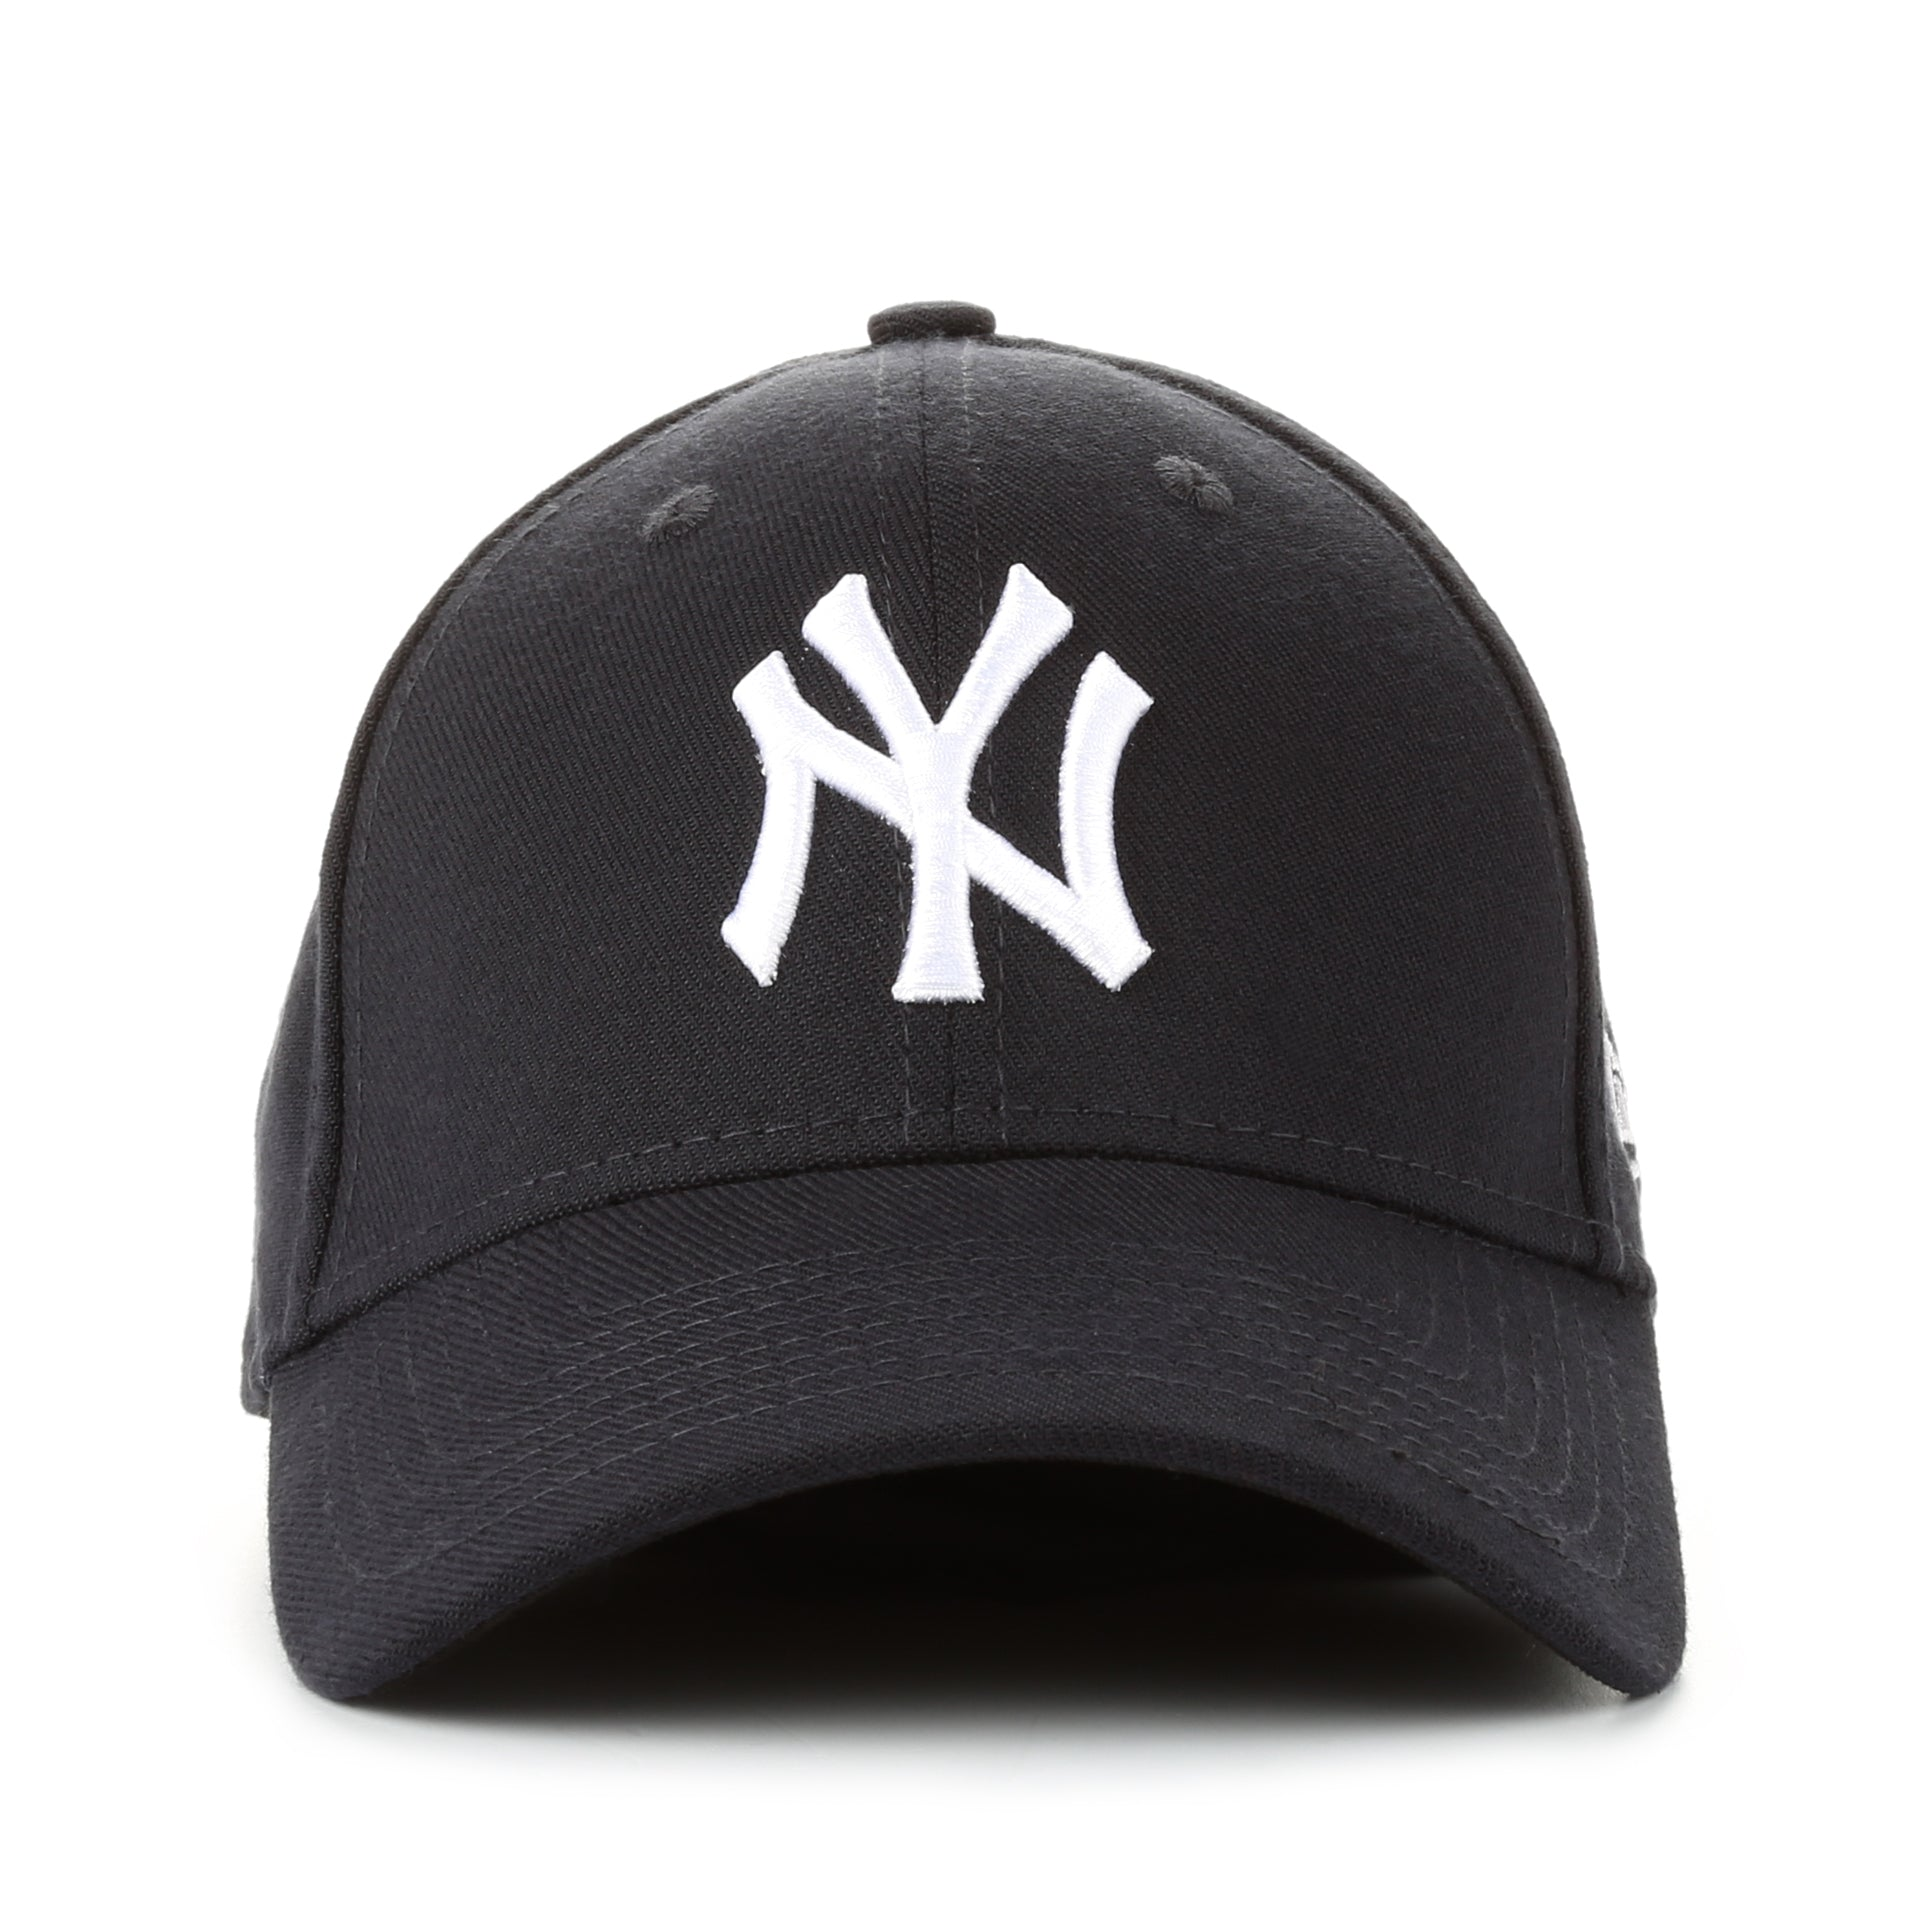 e1791855a2a ... low price new era 39thirty team classic stretch fit cap new york  yankees navy 40178 c5501